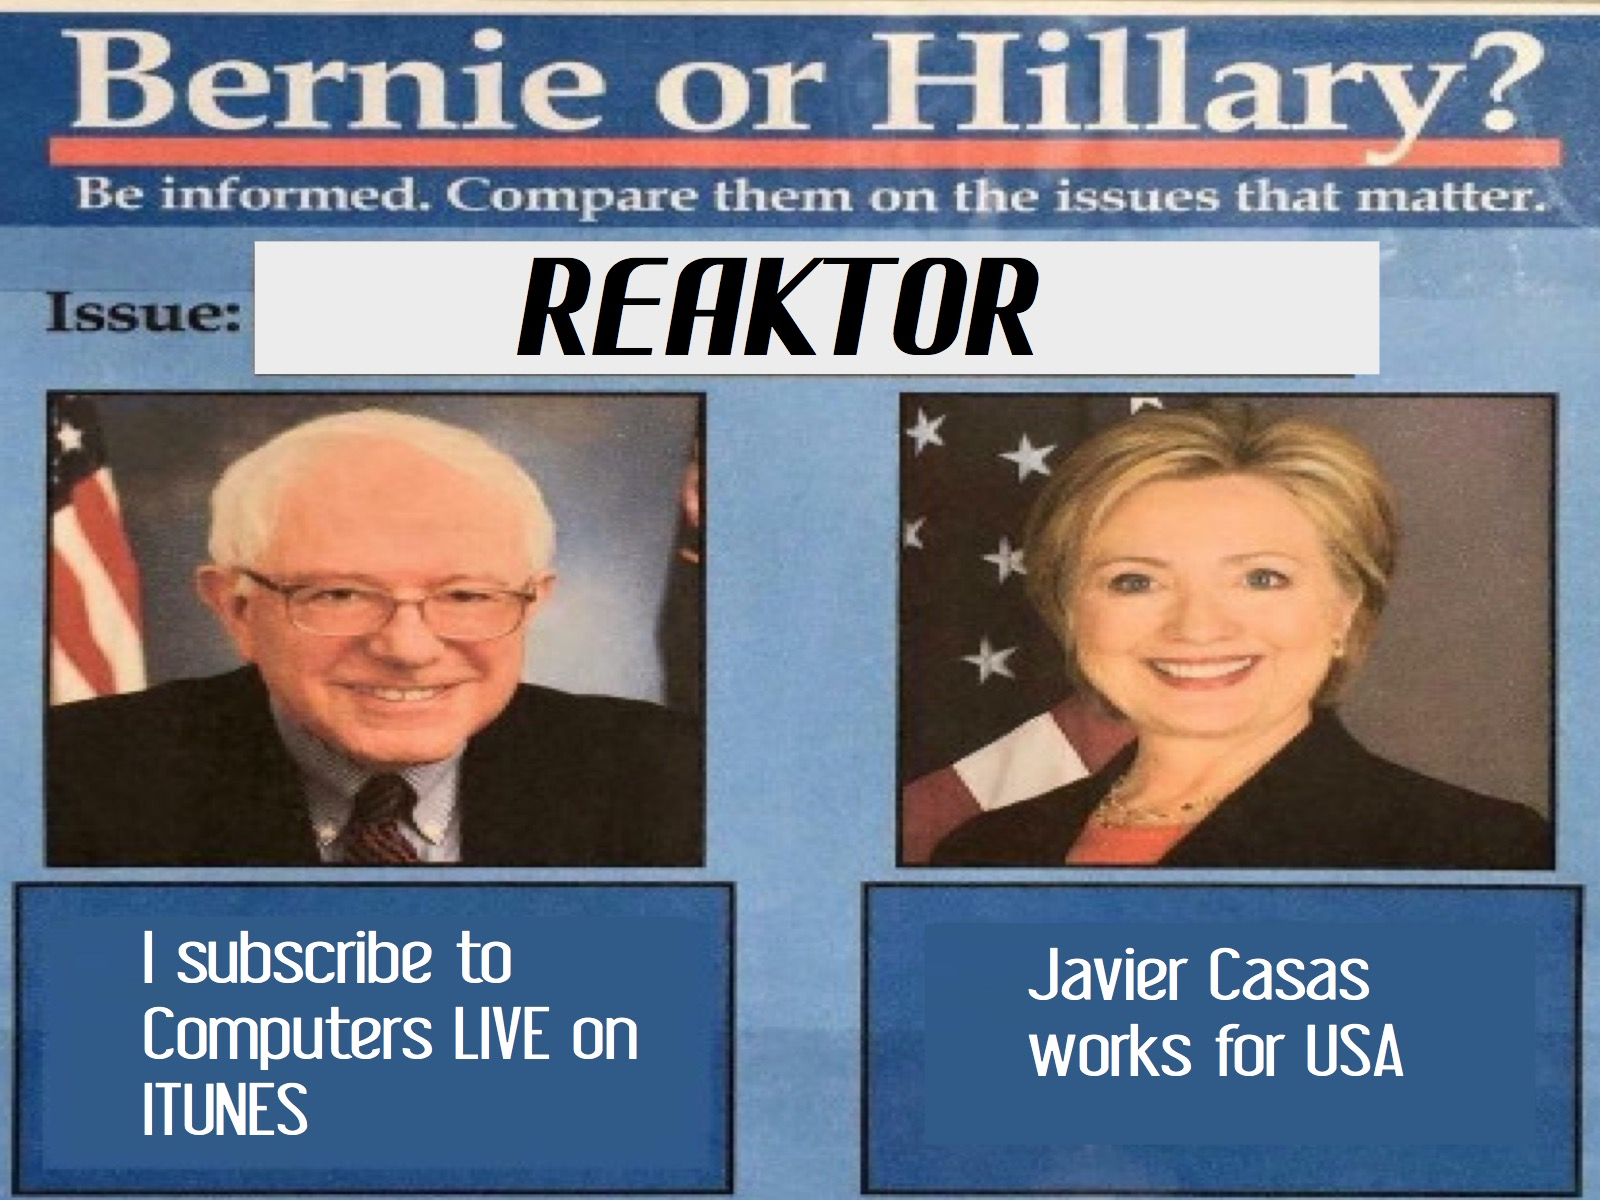 SUPER PAC - SILKROAD - BERNIE vs CLINTON - GREATEST WAR MARCHES - POLITICAL BASS - REAKTOR SENSEI - HARLEM GLOBE TROTTER